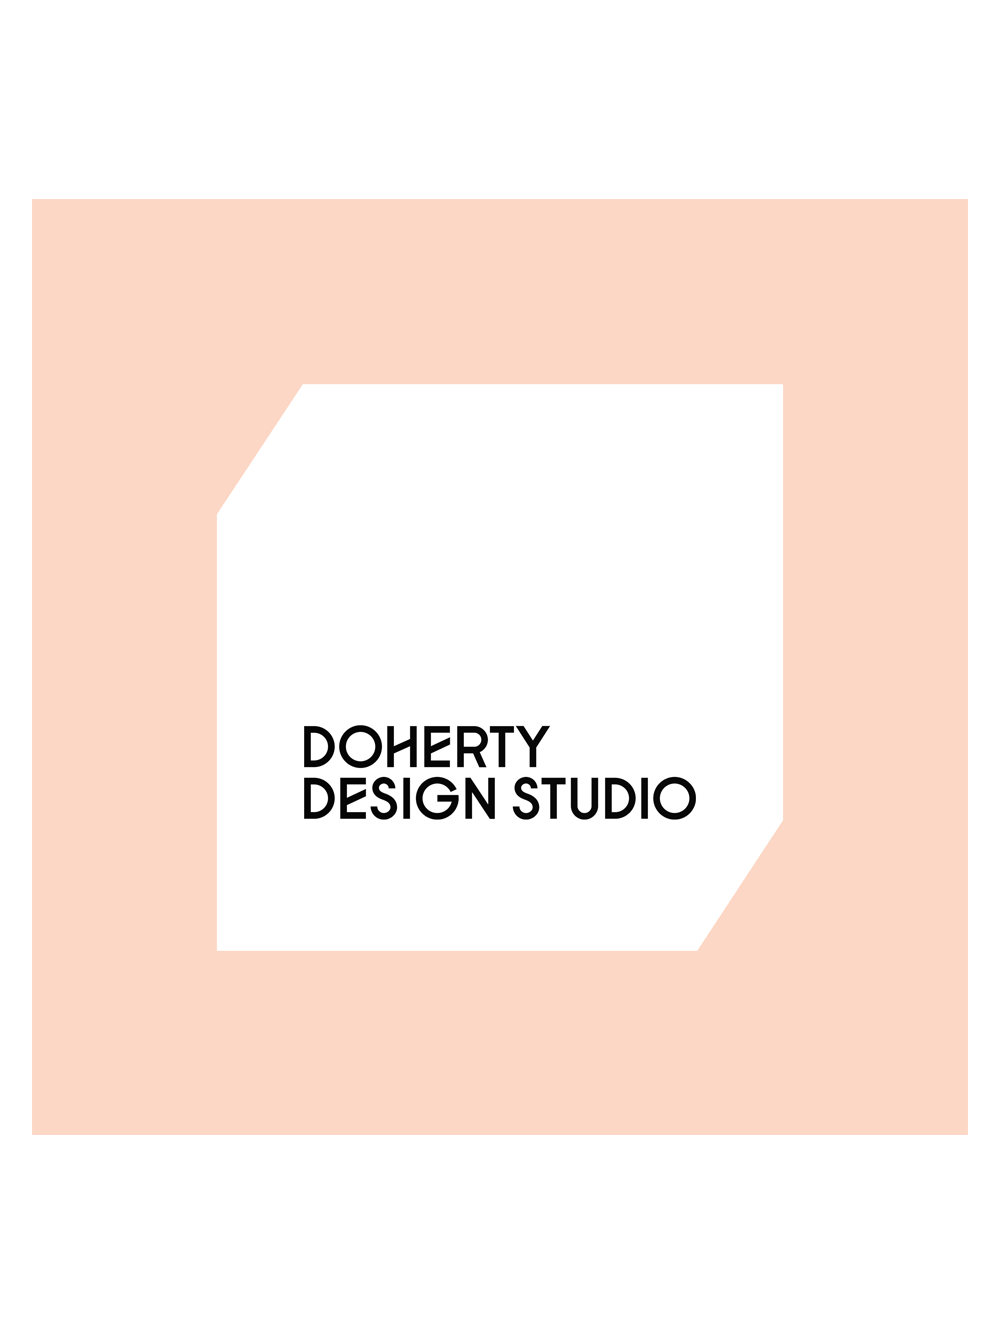 doherty-design-studio_1000x1333.png